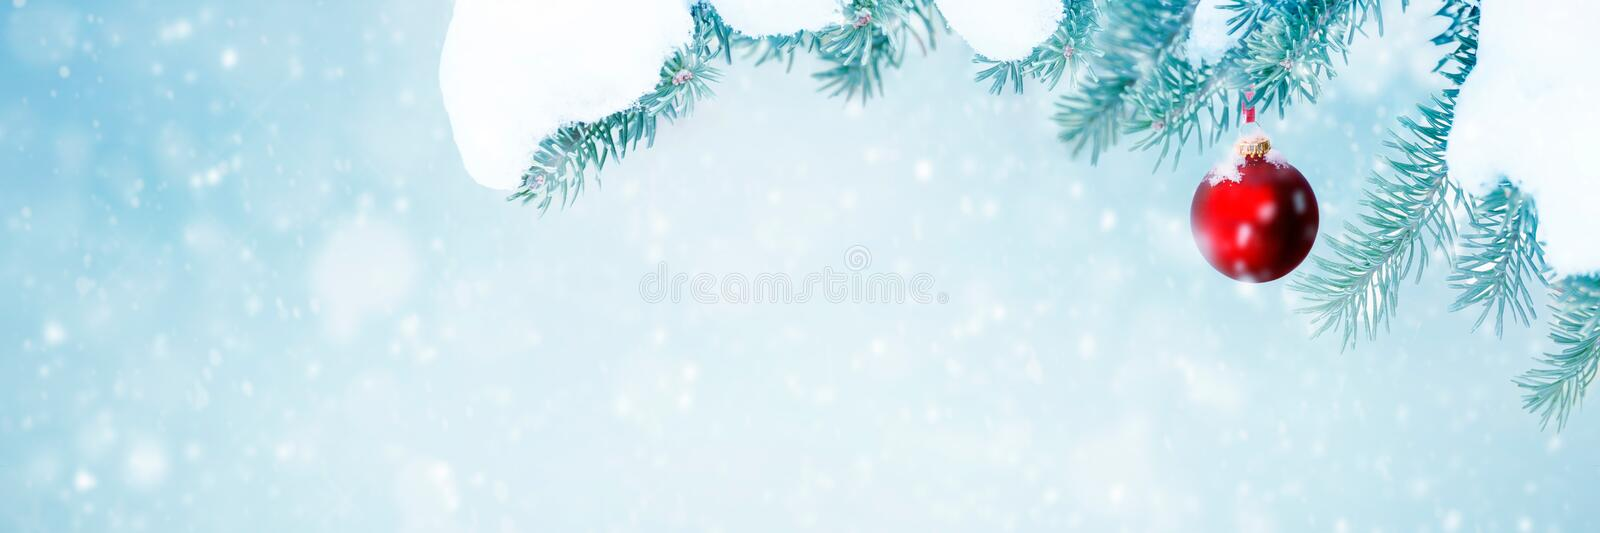 Neve de queda do fundo natural do Natal fotografia de stock royalty free